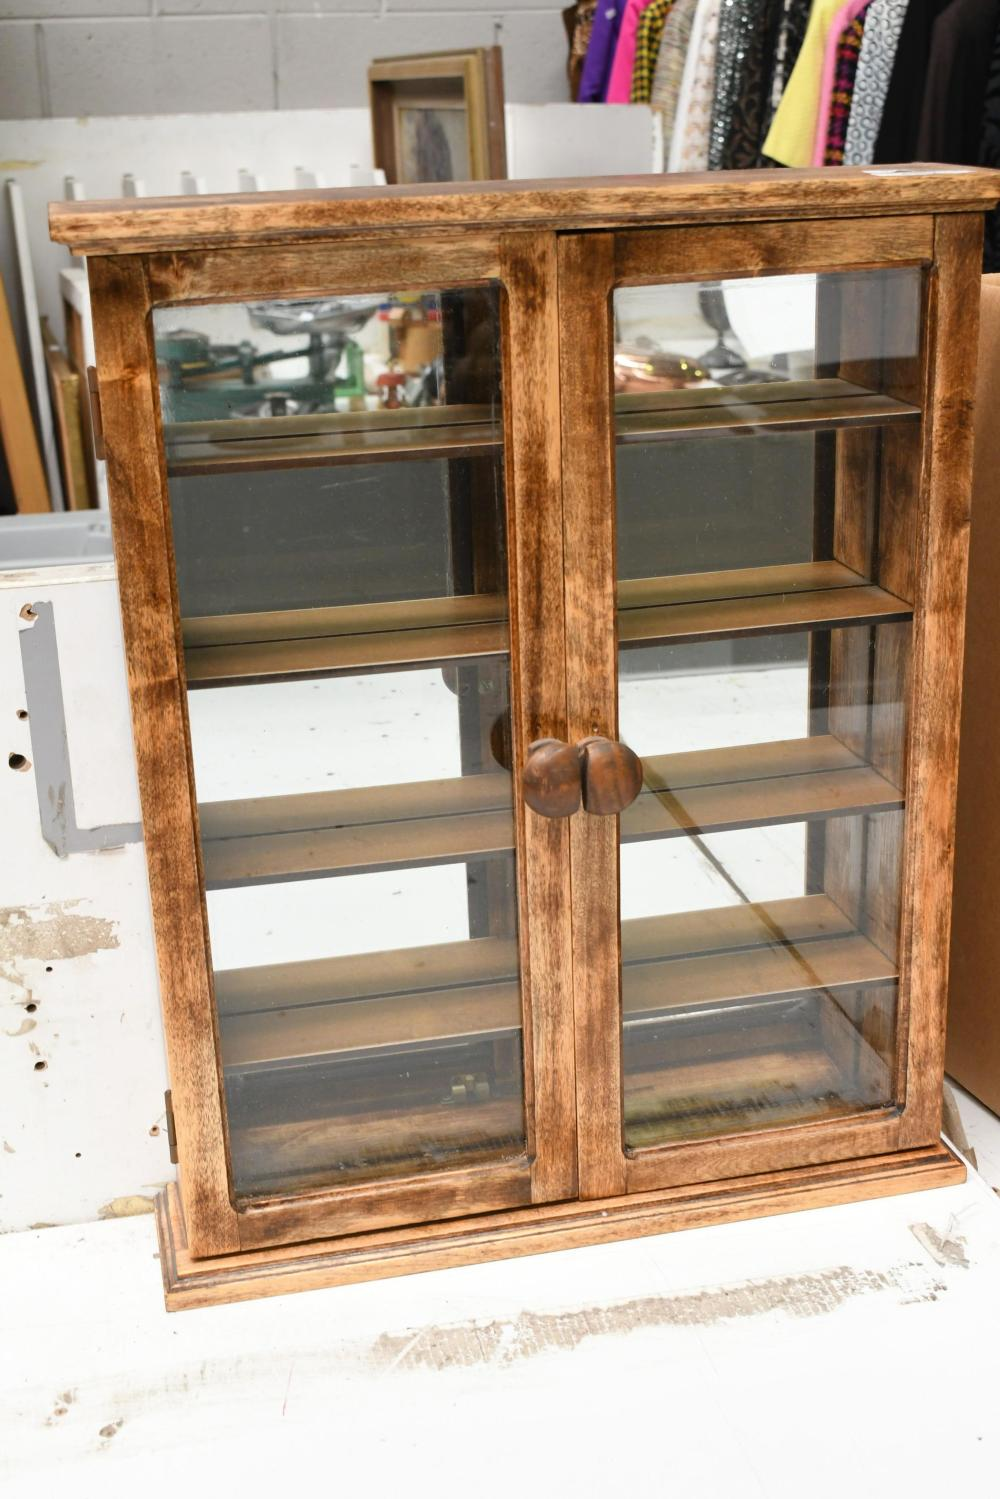 Small wall mounted display cabinet, 50cm H x 40cm W x 10cm D